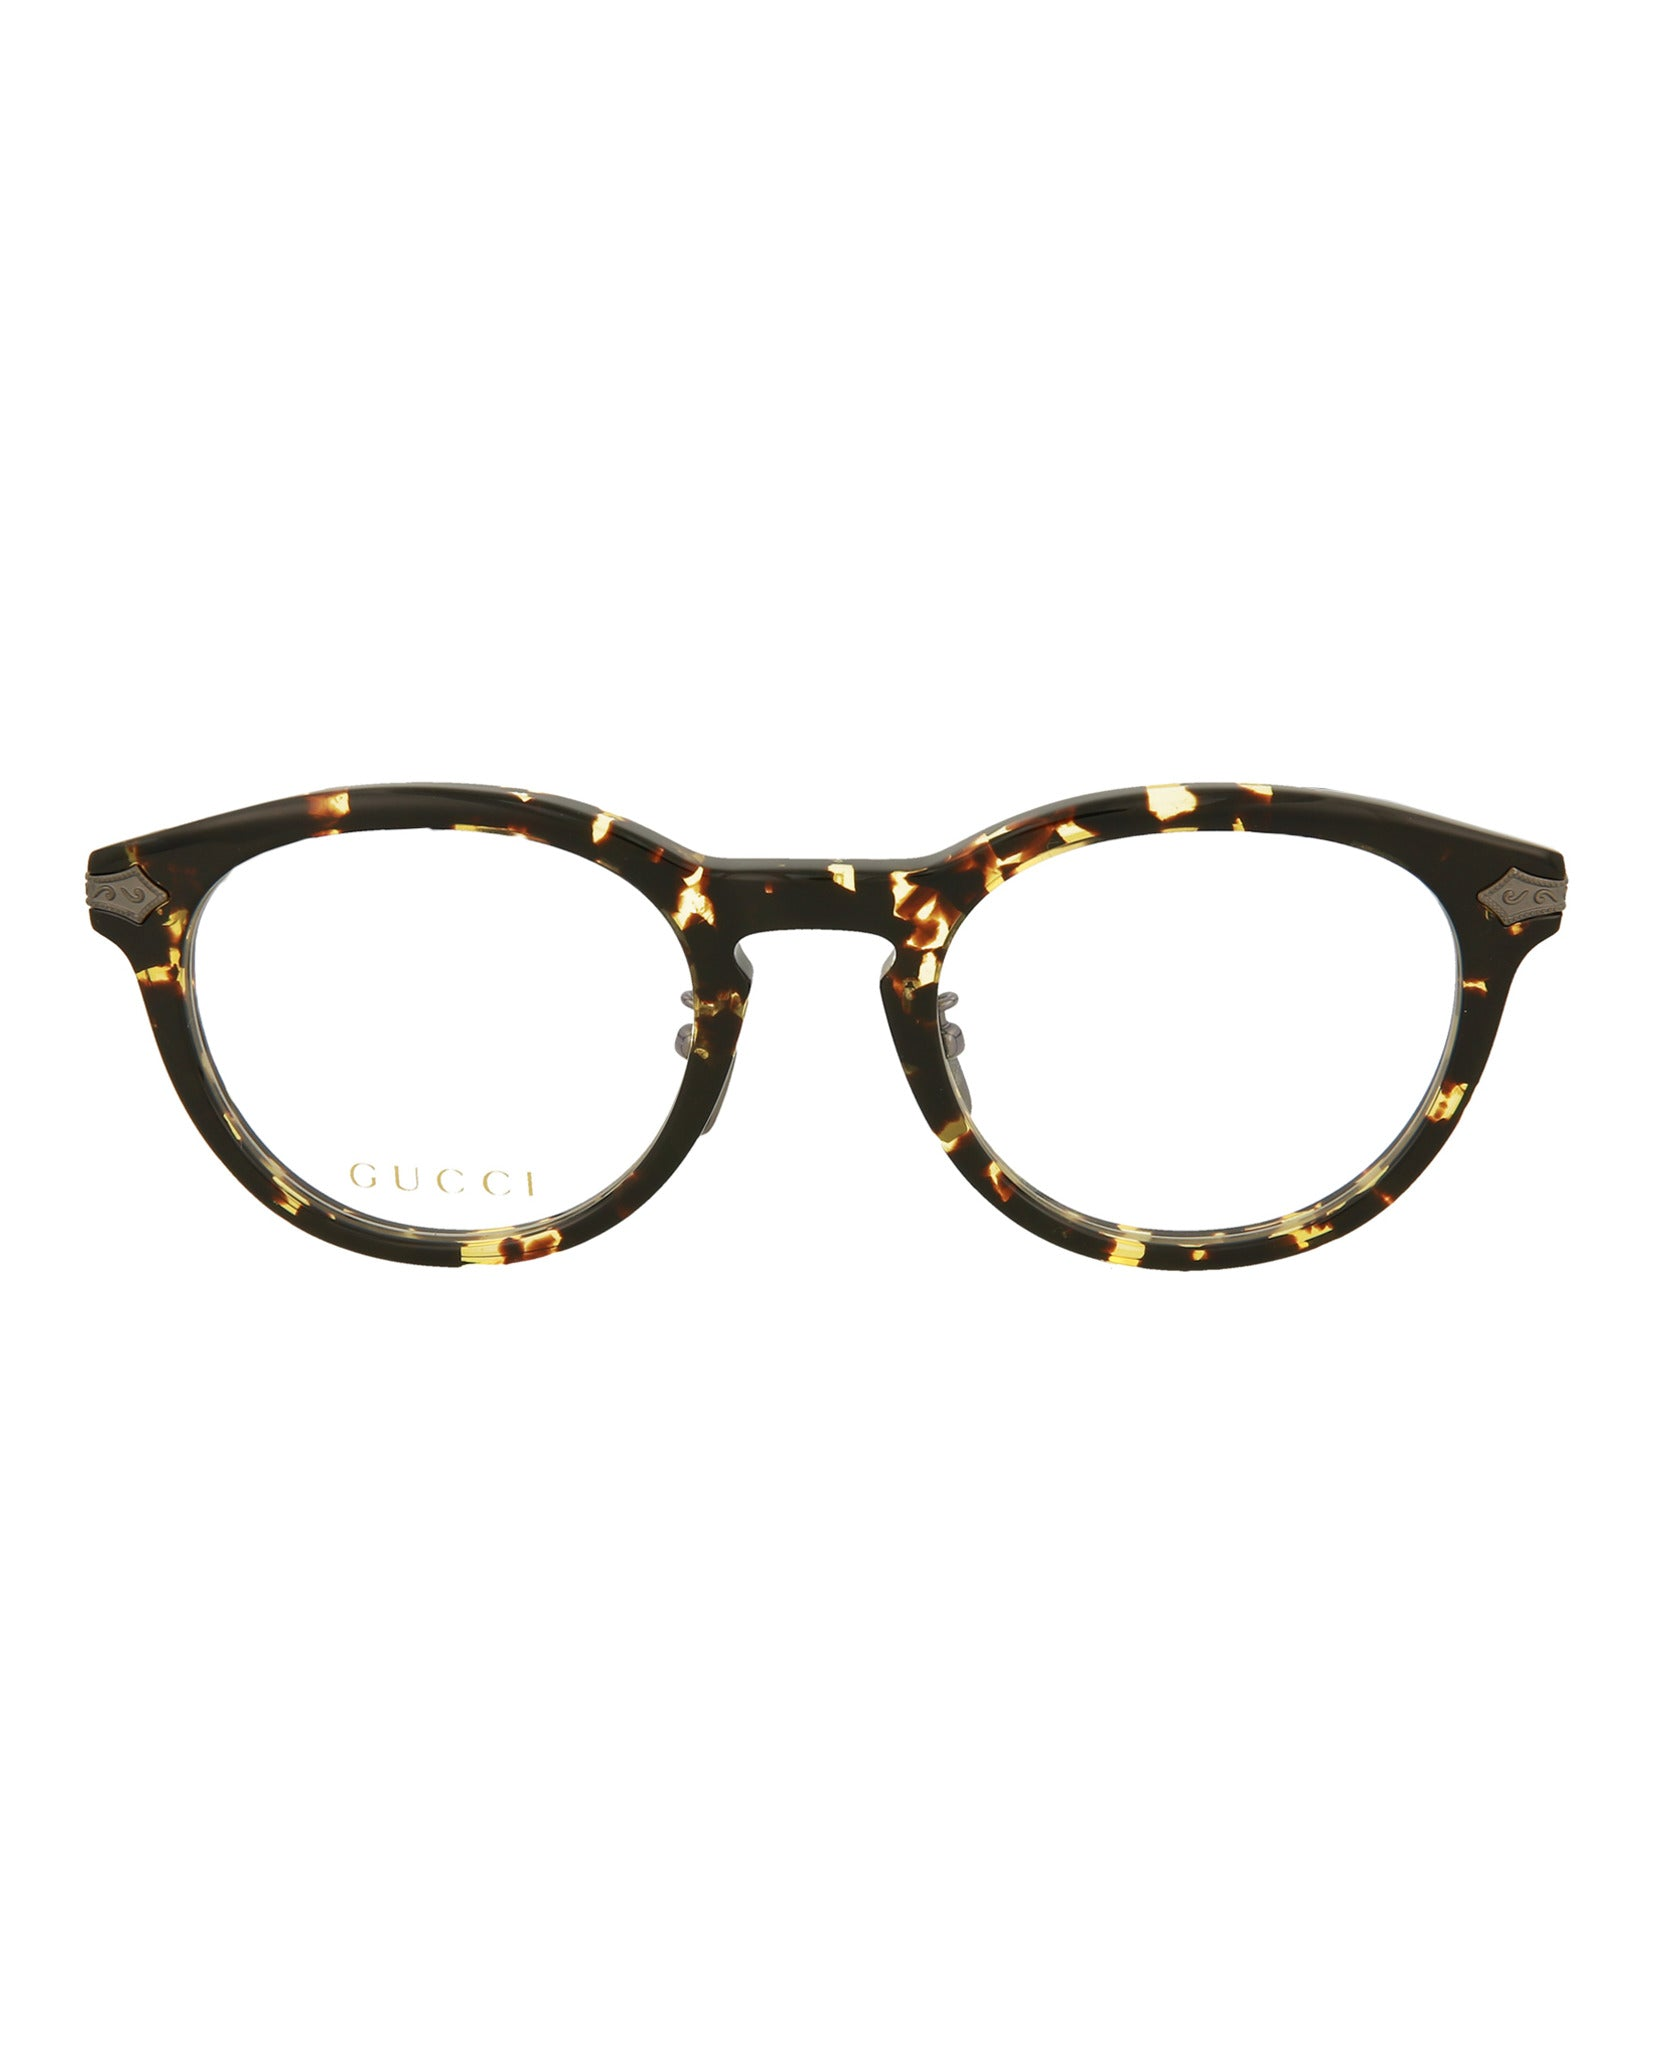 6fcd26ef22 Gucci Mens Round Oval Optical Frames